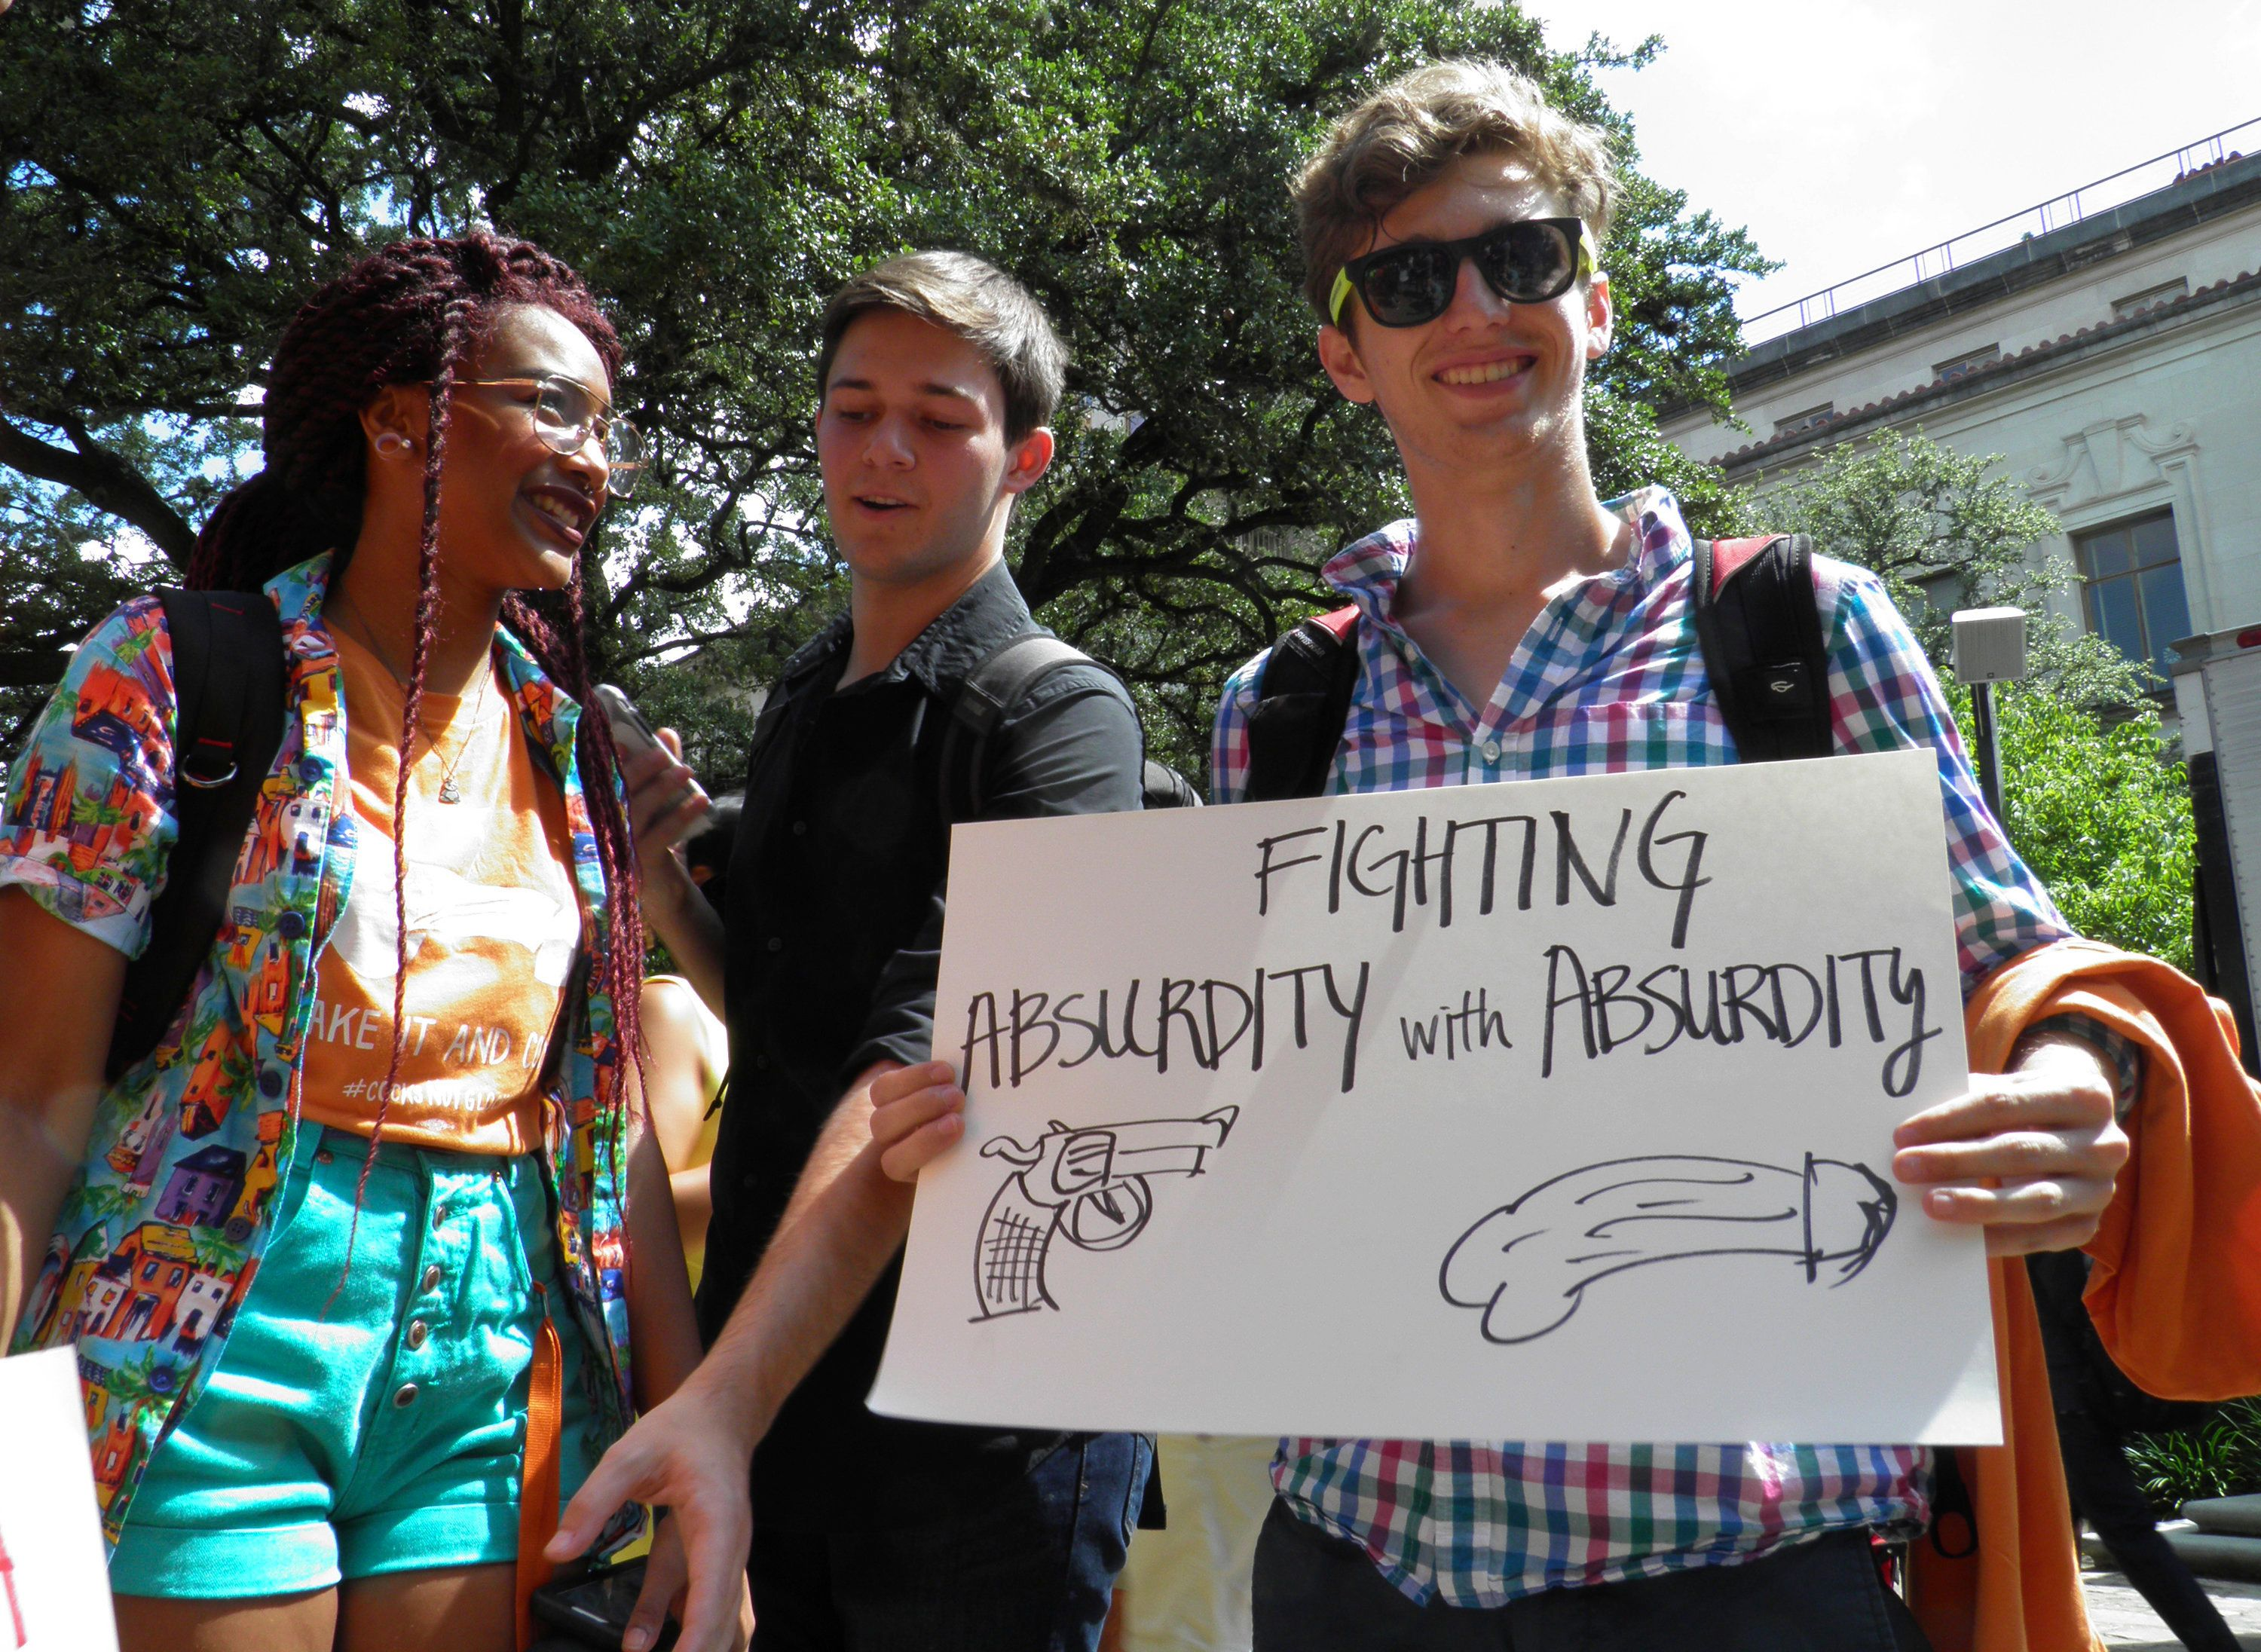 A University of Texas students attend a protest against a state law that allows for guns in classrooms at college campuses, in Austin, Texas, U.S. August 24, 2016.  At the rally, students at the University of Texas openly displayed sex toys, an act considered illegal under local indecency laws.   REUTERS/Jon Herskovitz  TEMPLATE OUT